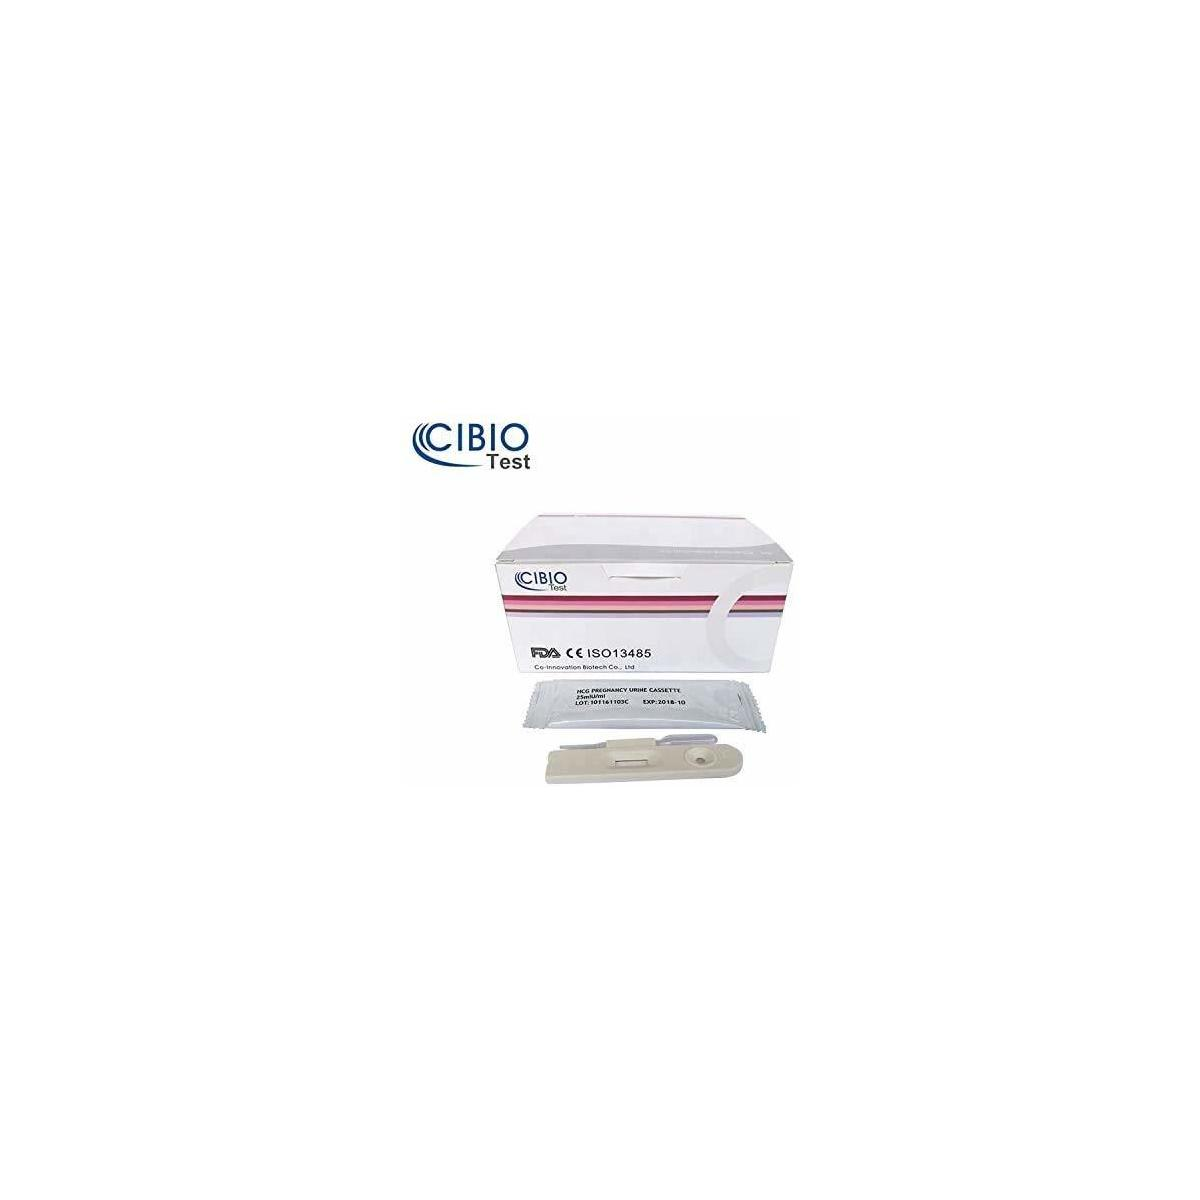 Package Quantity: 10  Pregnancy Test Kit - Quick & Accurate Home Diagnostic Early Pregnancy Tests